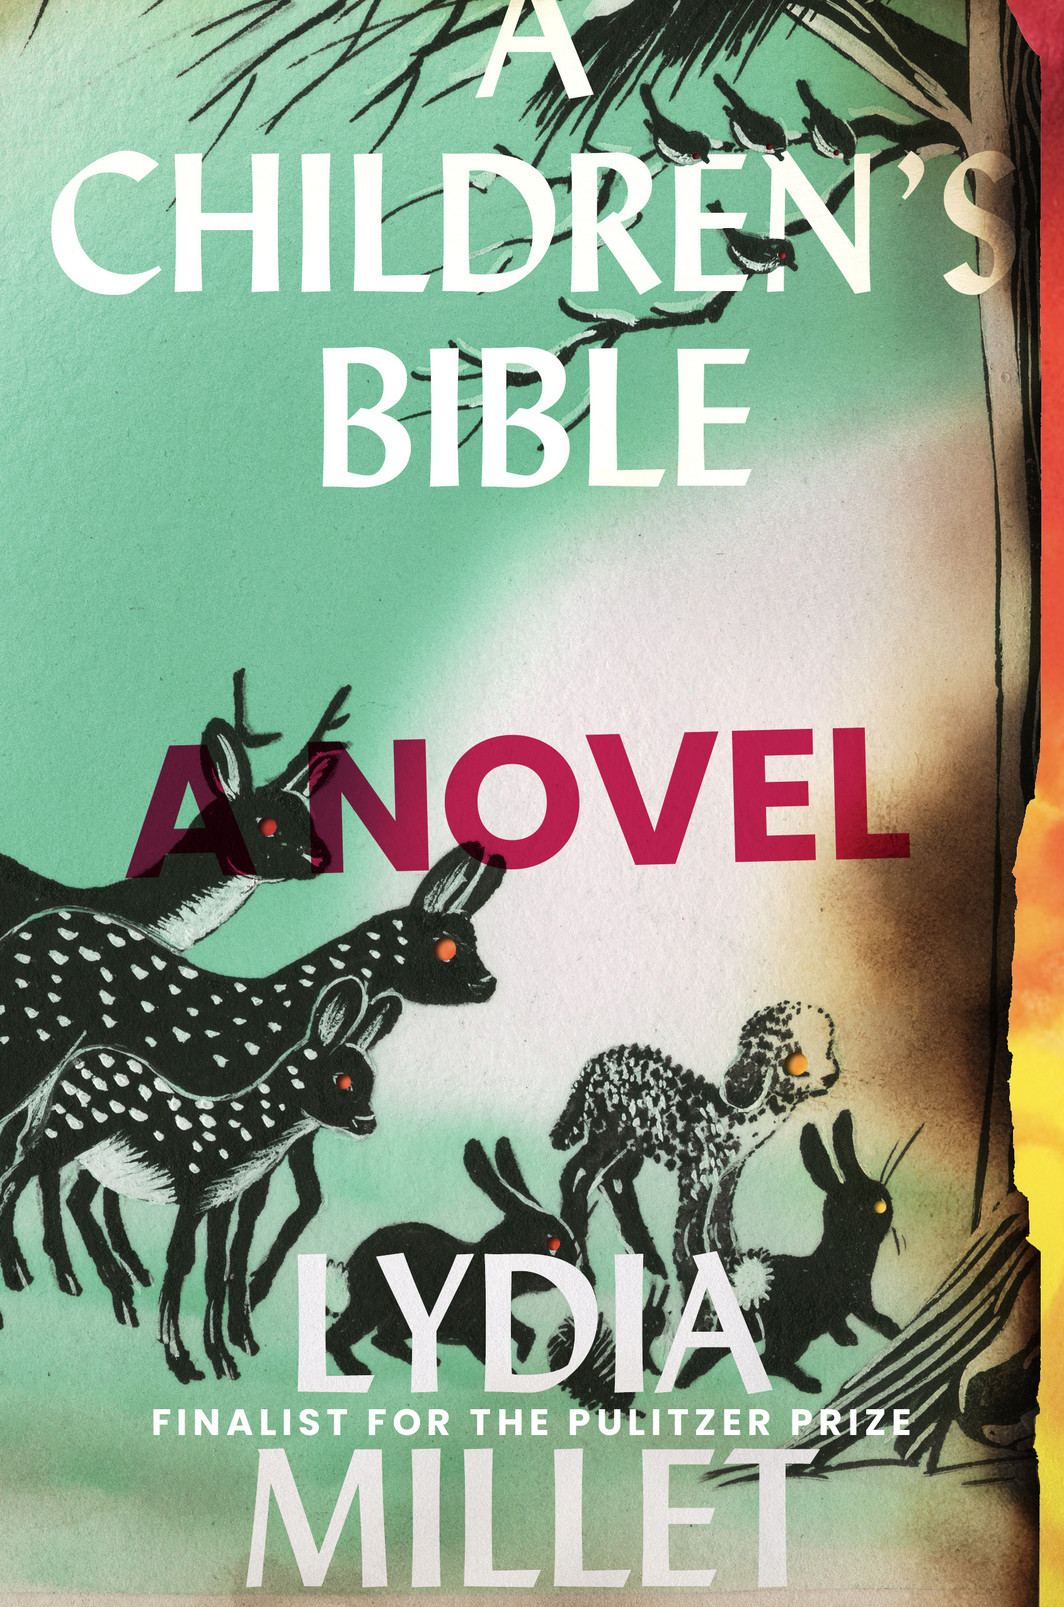 The cover of A Children's Bible